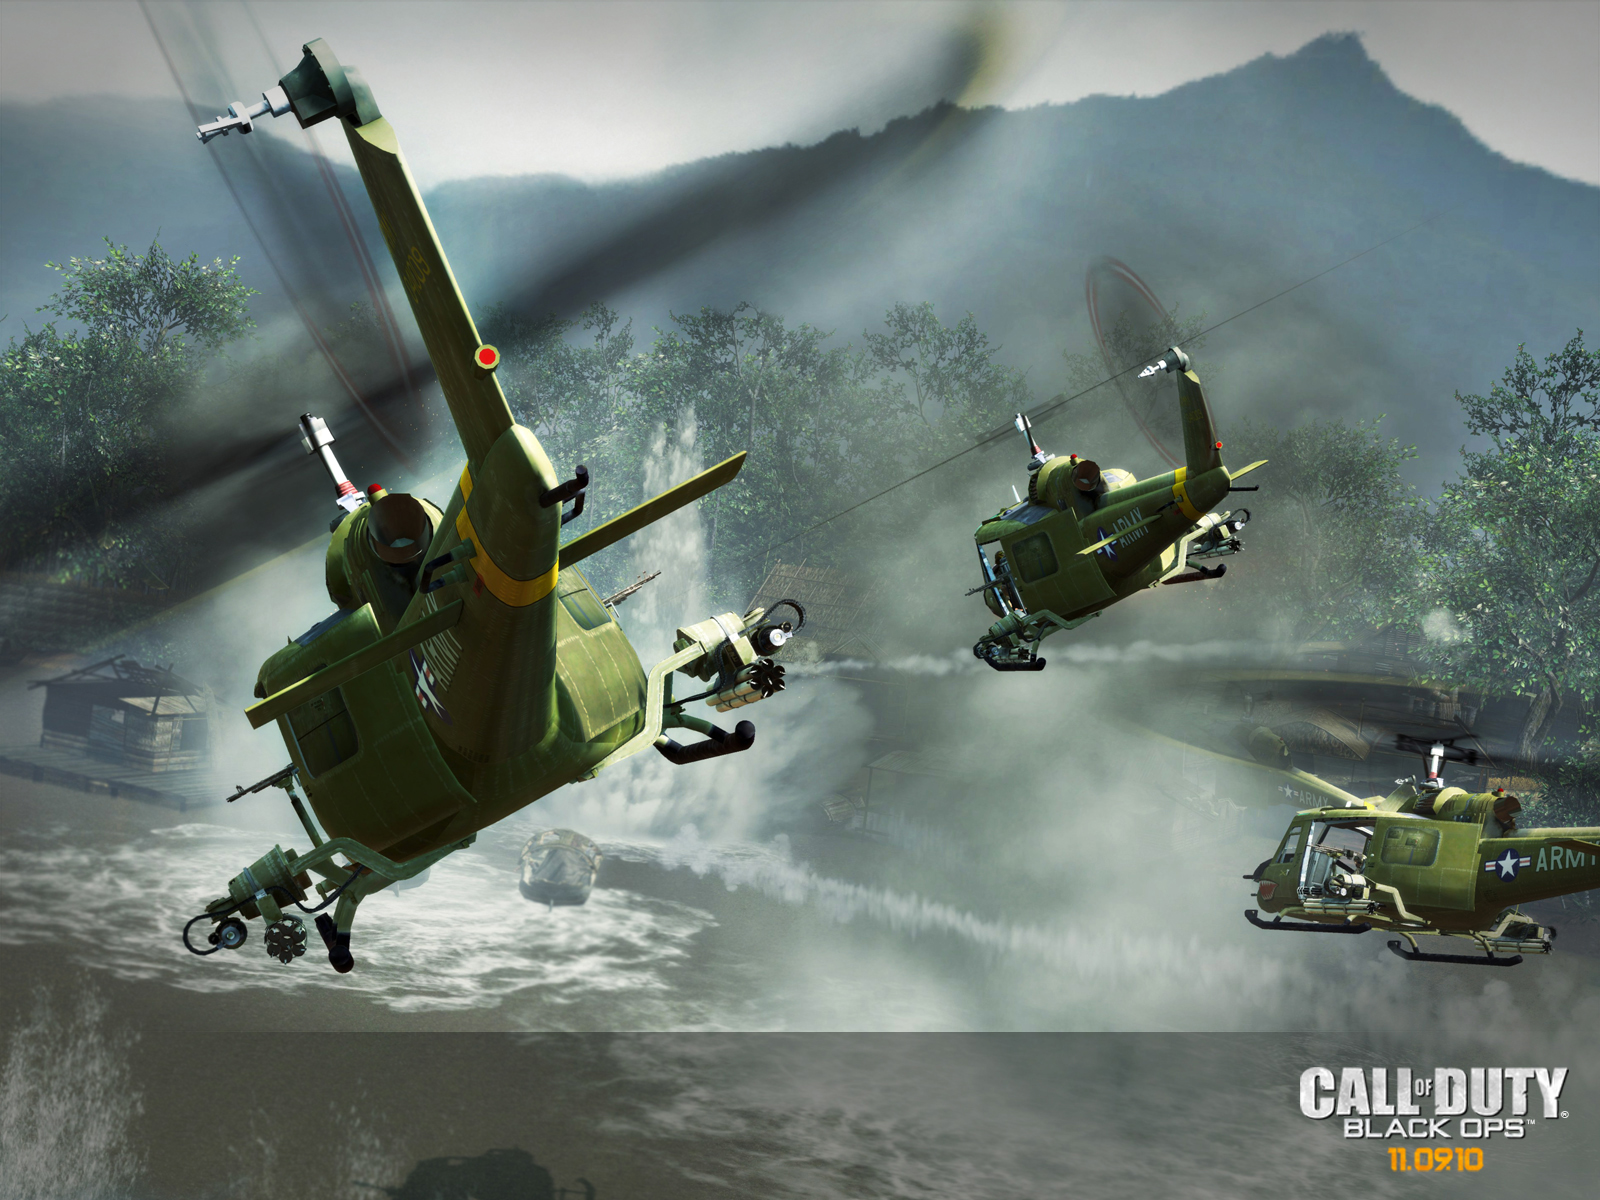 call of duty black ops wallpapers and backgrounds